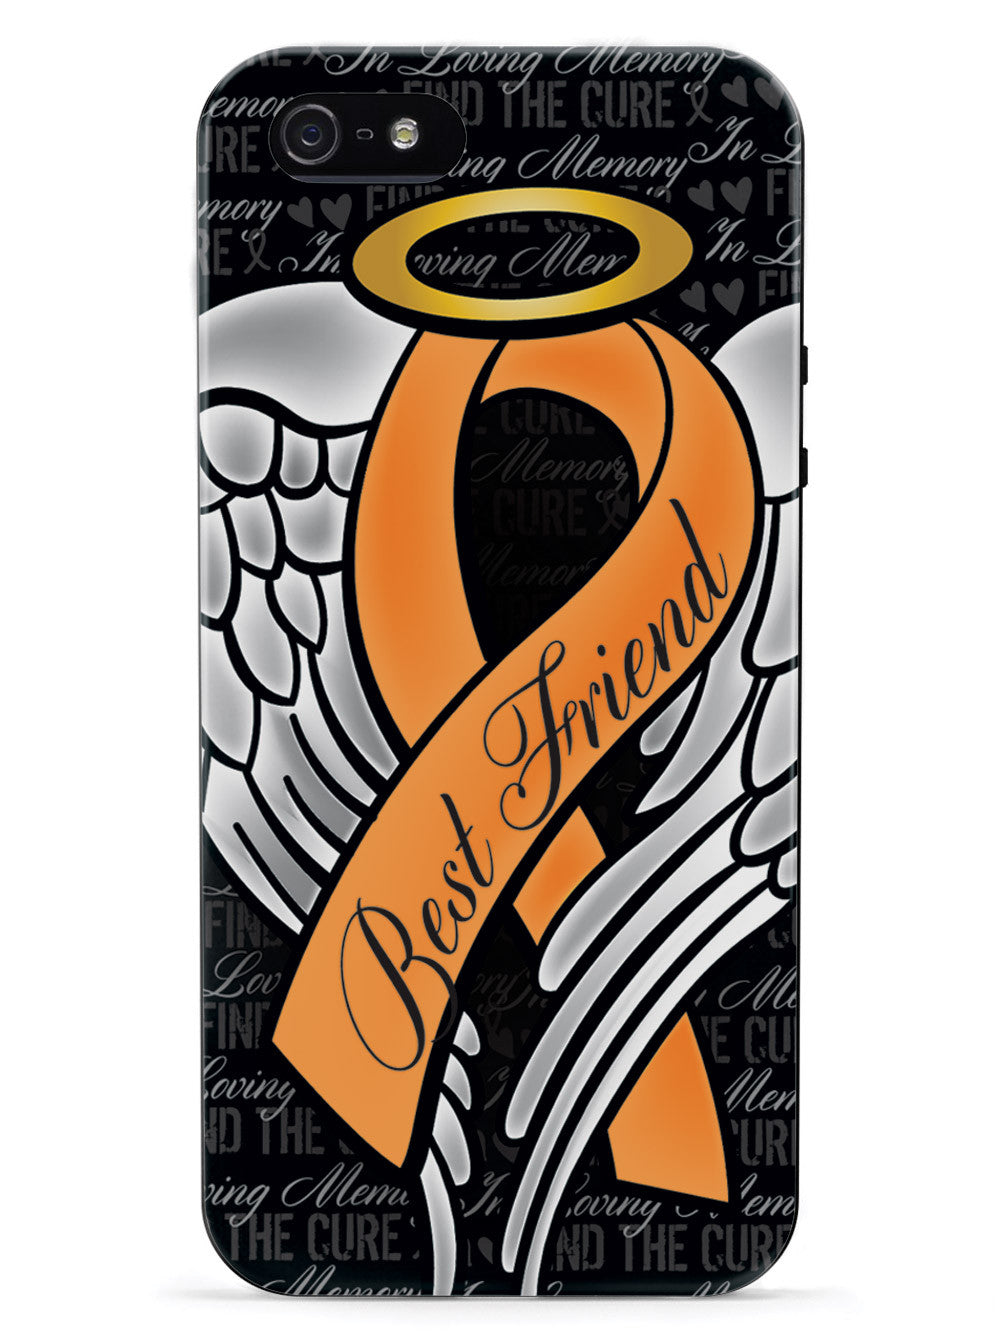 In Loving Memory of My Best Friend - Orange Ribbon Case